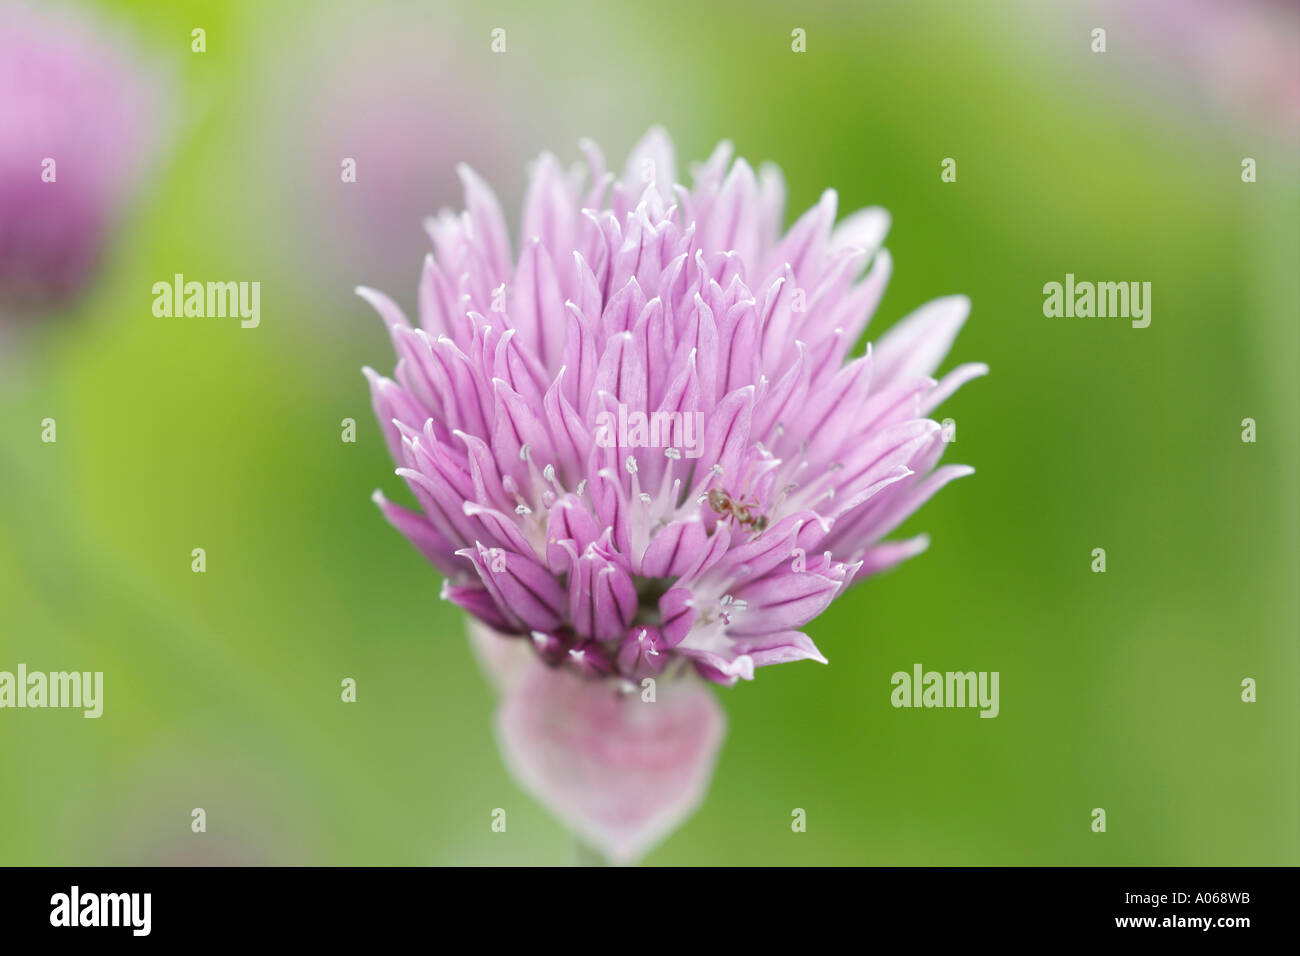 Close up of a pink chive flower Stock Photo